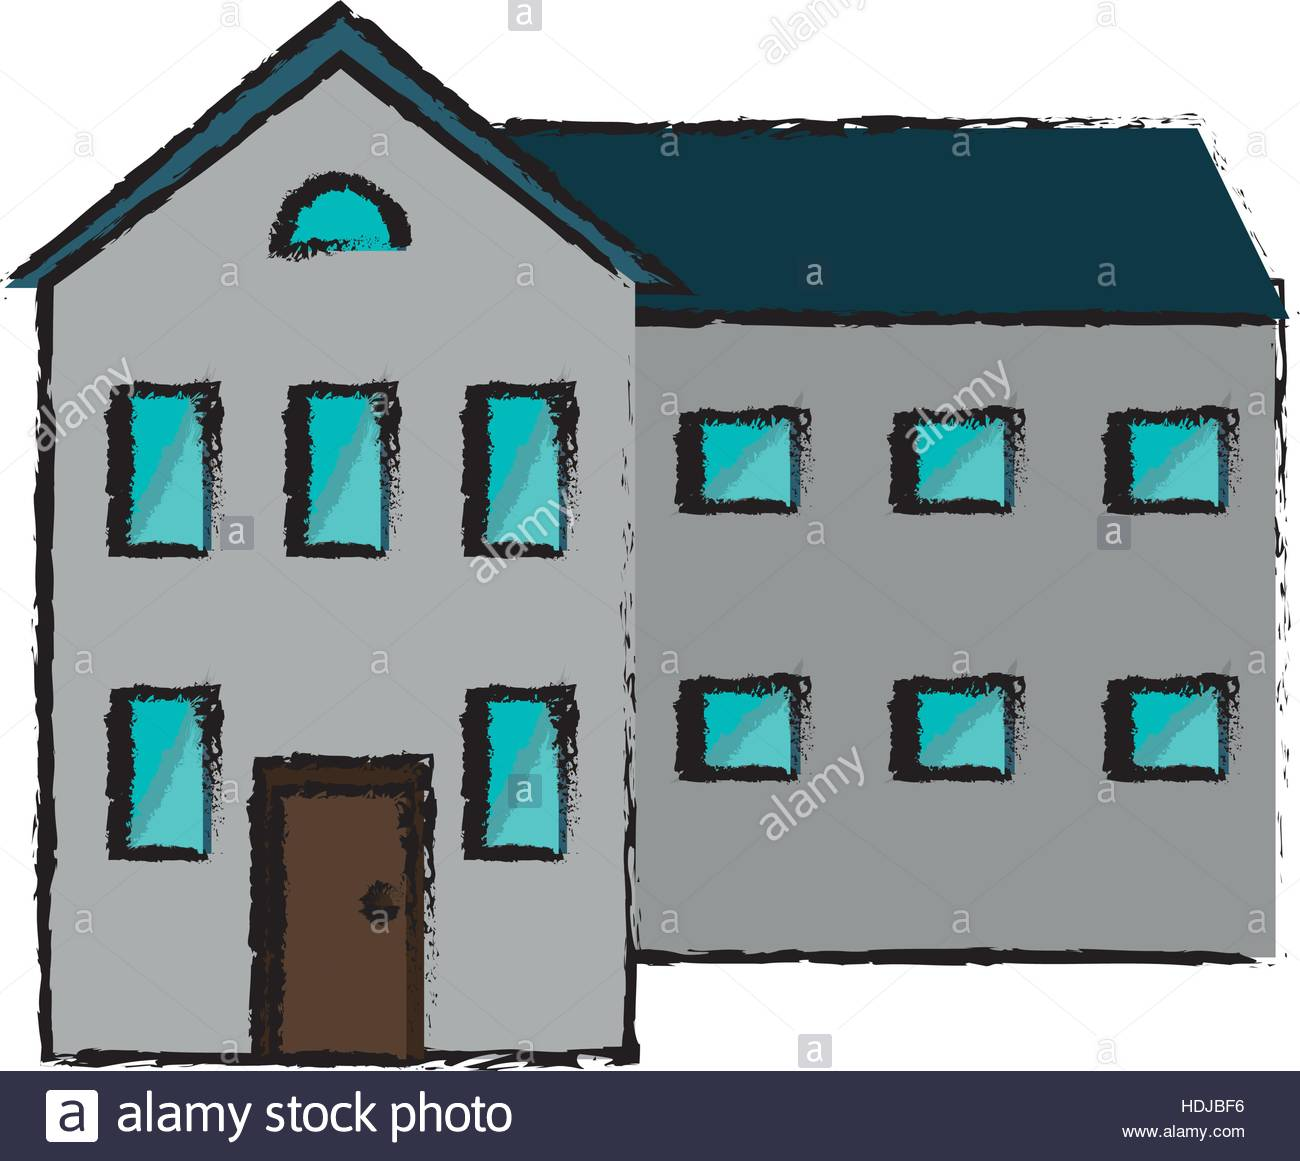 1300x1161 Drawing Big House And Many Windows Stock Vector Art Amp Illustration